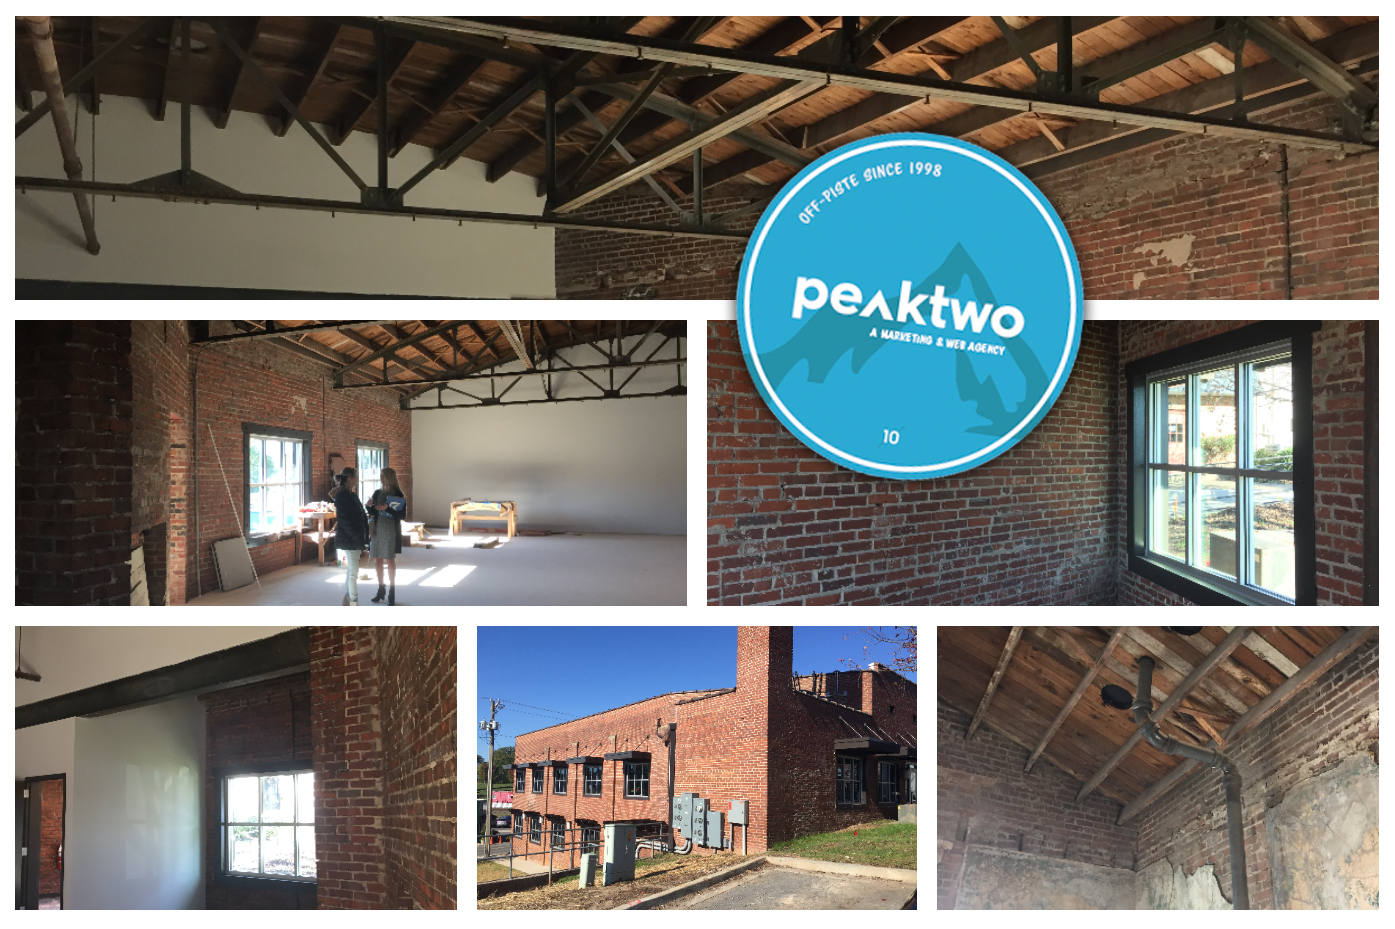 peaktwo relocated from Charlotte, NC to new offices on Main Street in Fort Mill